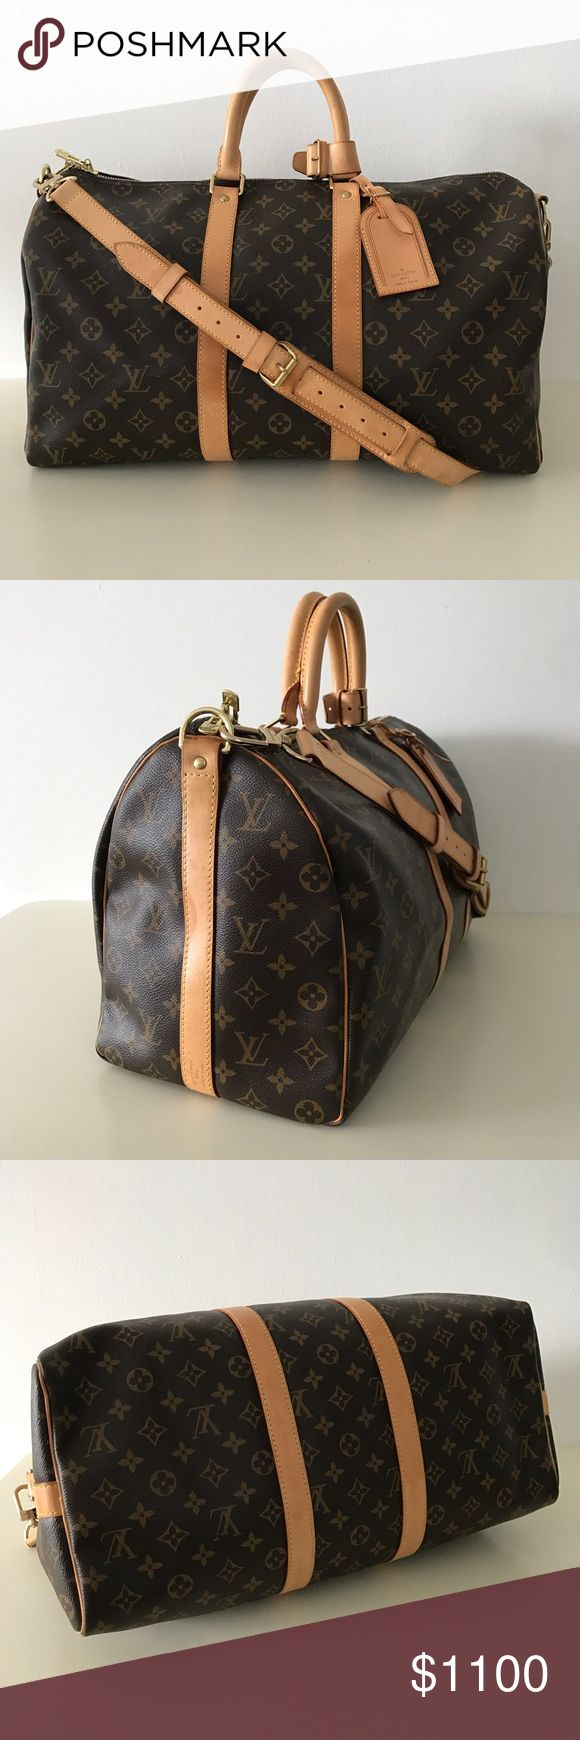 LOUIS VUITTON KEEPALL BANDOULIERE 45 MONOGRAM BAG Minimally used, in excellent condition. Retail value: over $1,800. Lightweight and roomy, the Louis Vuitton Keepall Bandoulière 45 is the only way to travel in style. Its timeless shape and classic Monogram canvas are as fresh today as they ever have been. 17.7 x 10.6 x 7.9 inches (Length x Height x Width)   - Removable strap with shoulder patch - Leather strap and handles - Cabin size - Removable leather name tag Louis Vuitton Bags Travel…